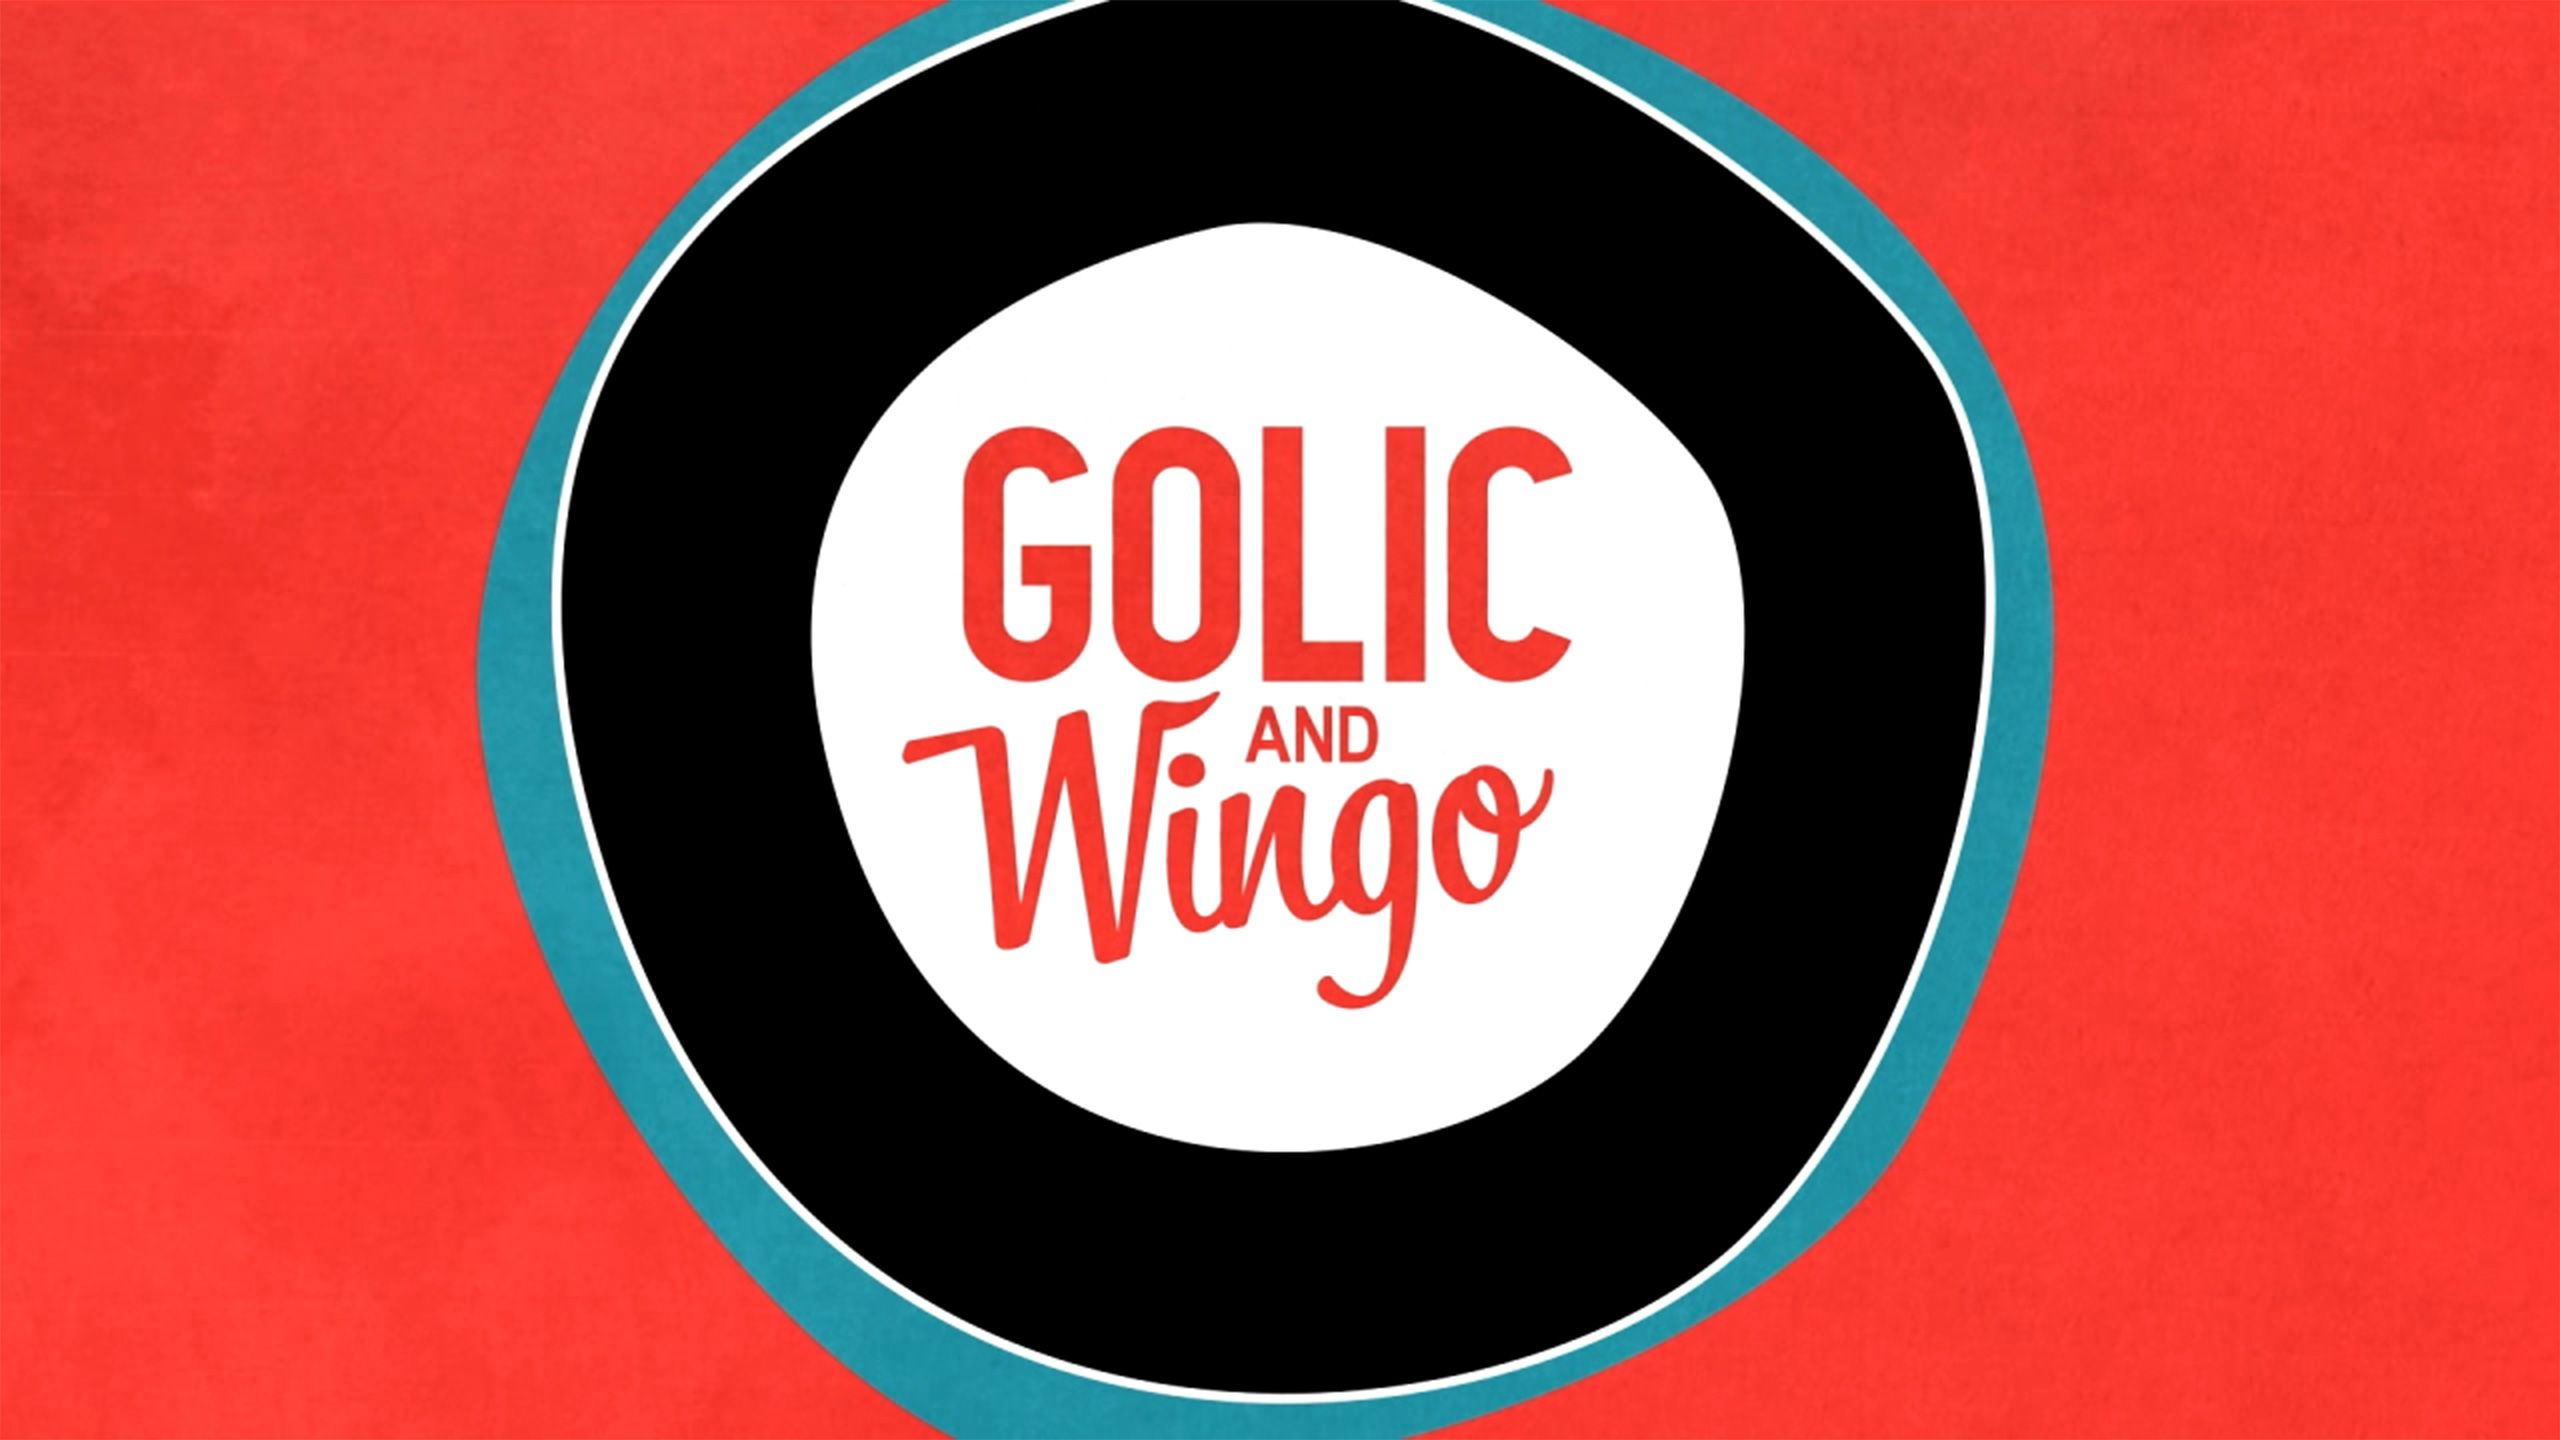 Wed, 1/17 - Golic and Wingo